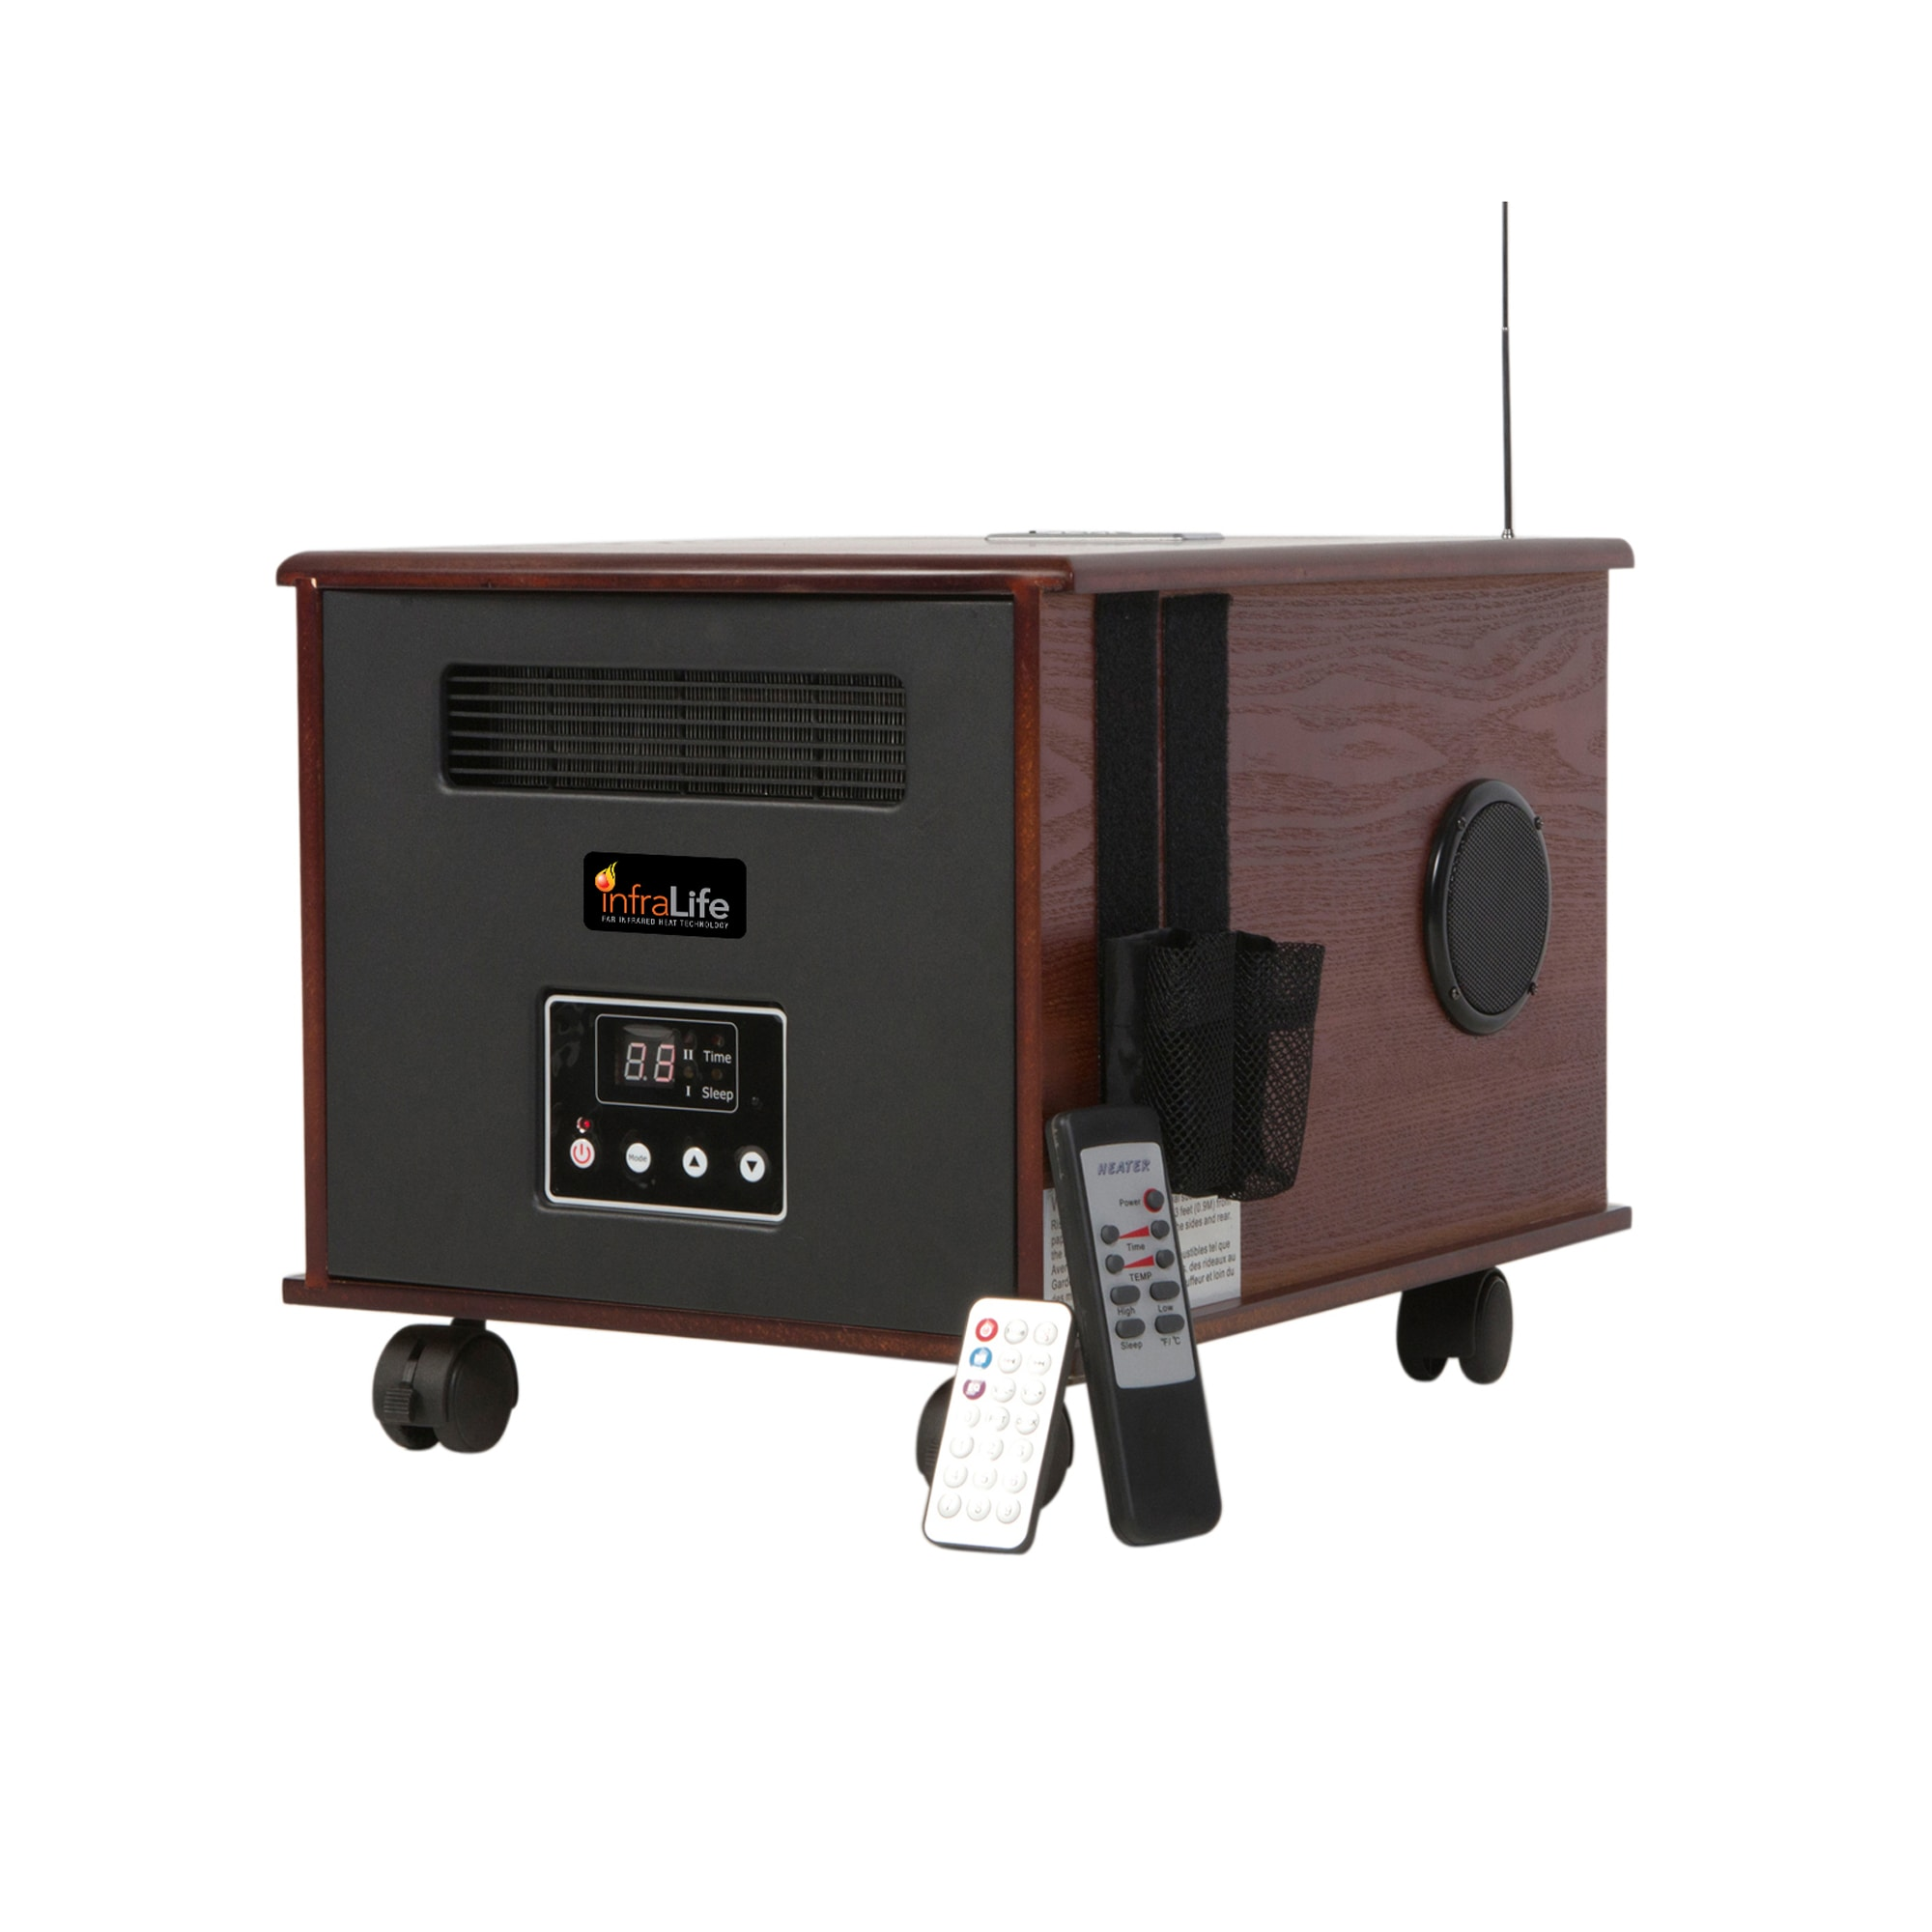 Infralife 300PTC Digital Infrared Space Heater with Music at Sears.com